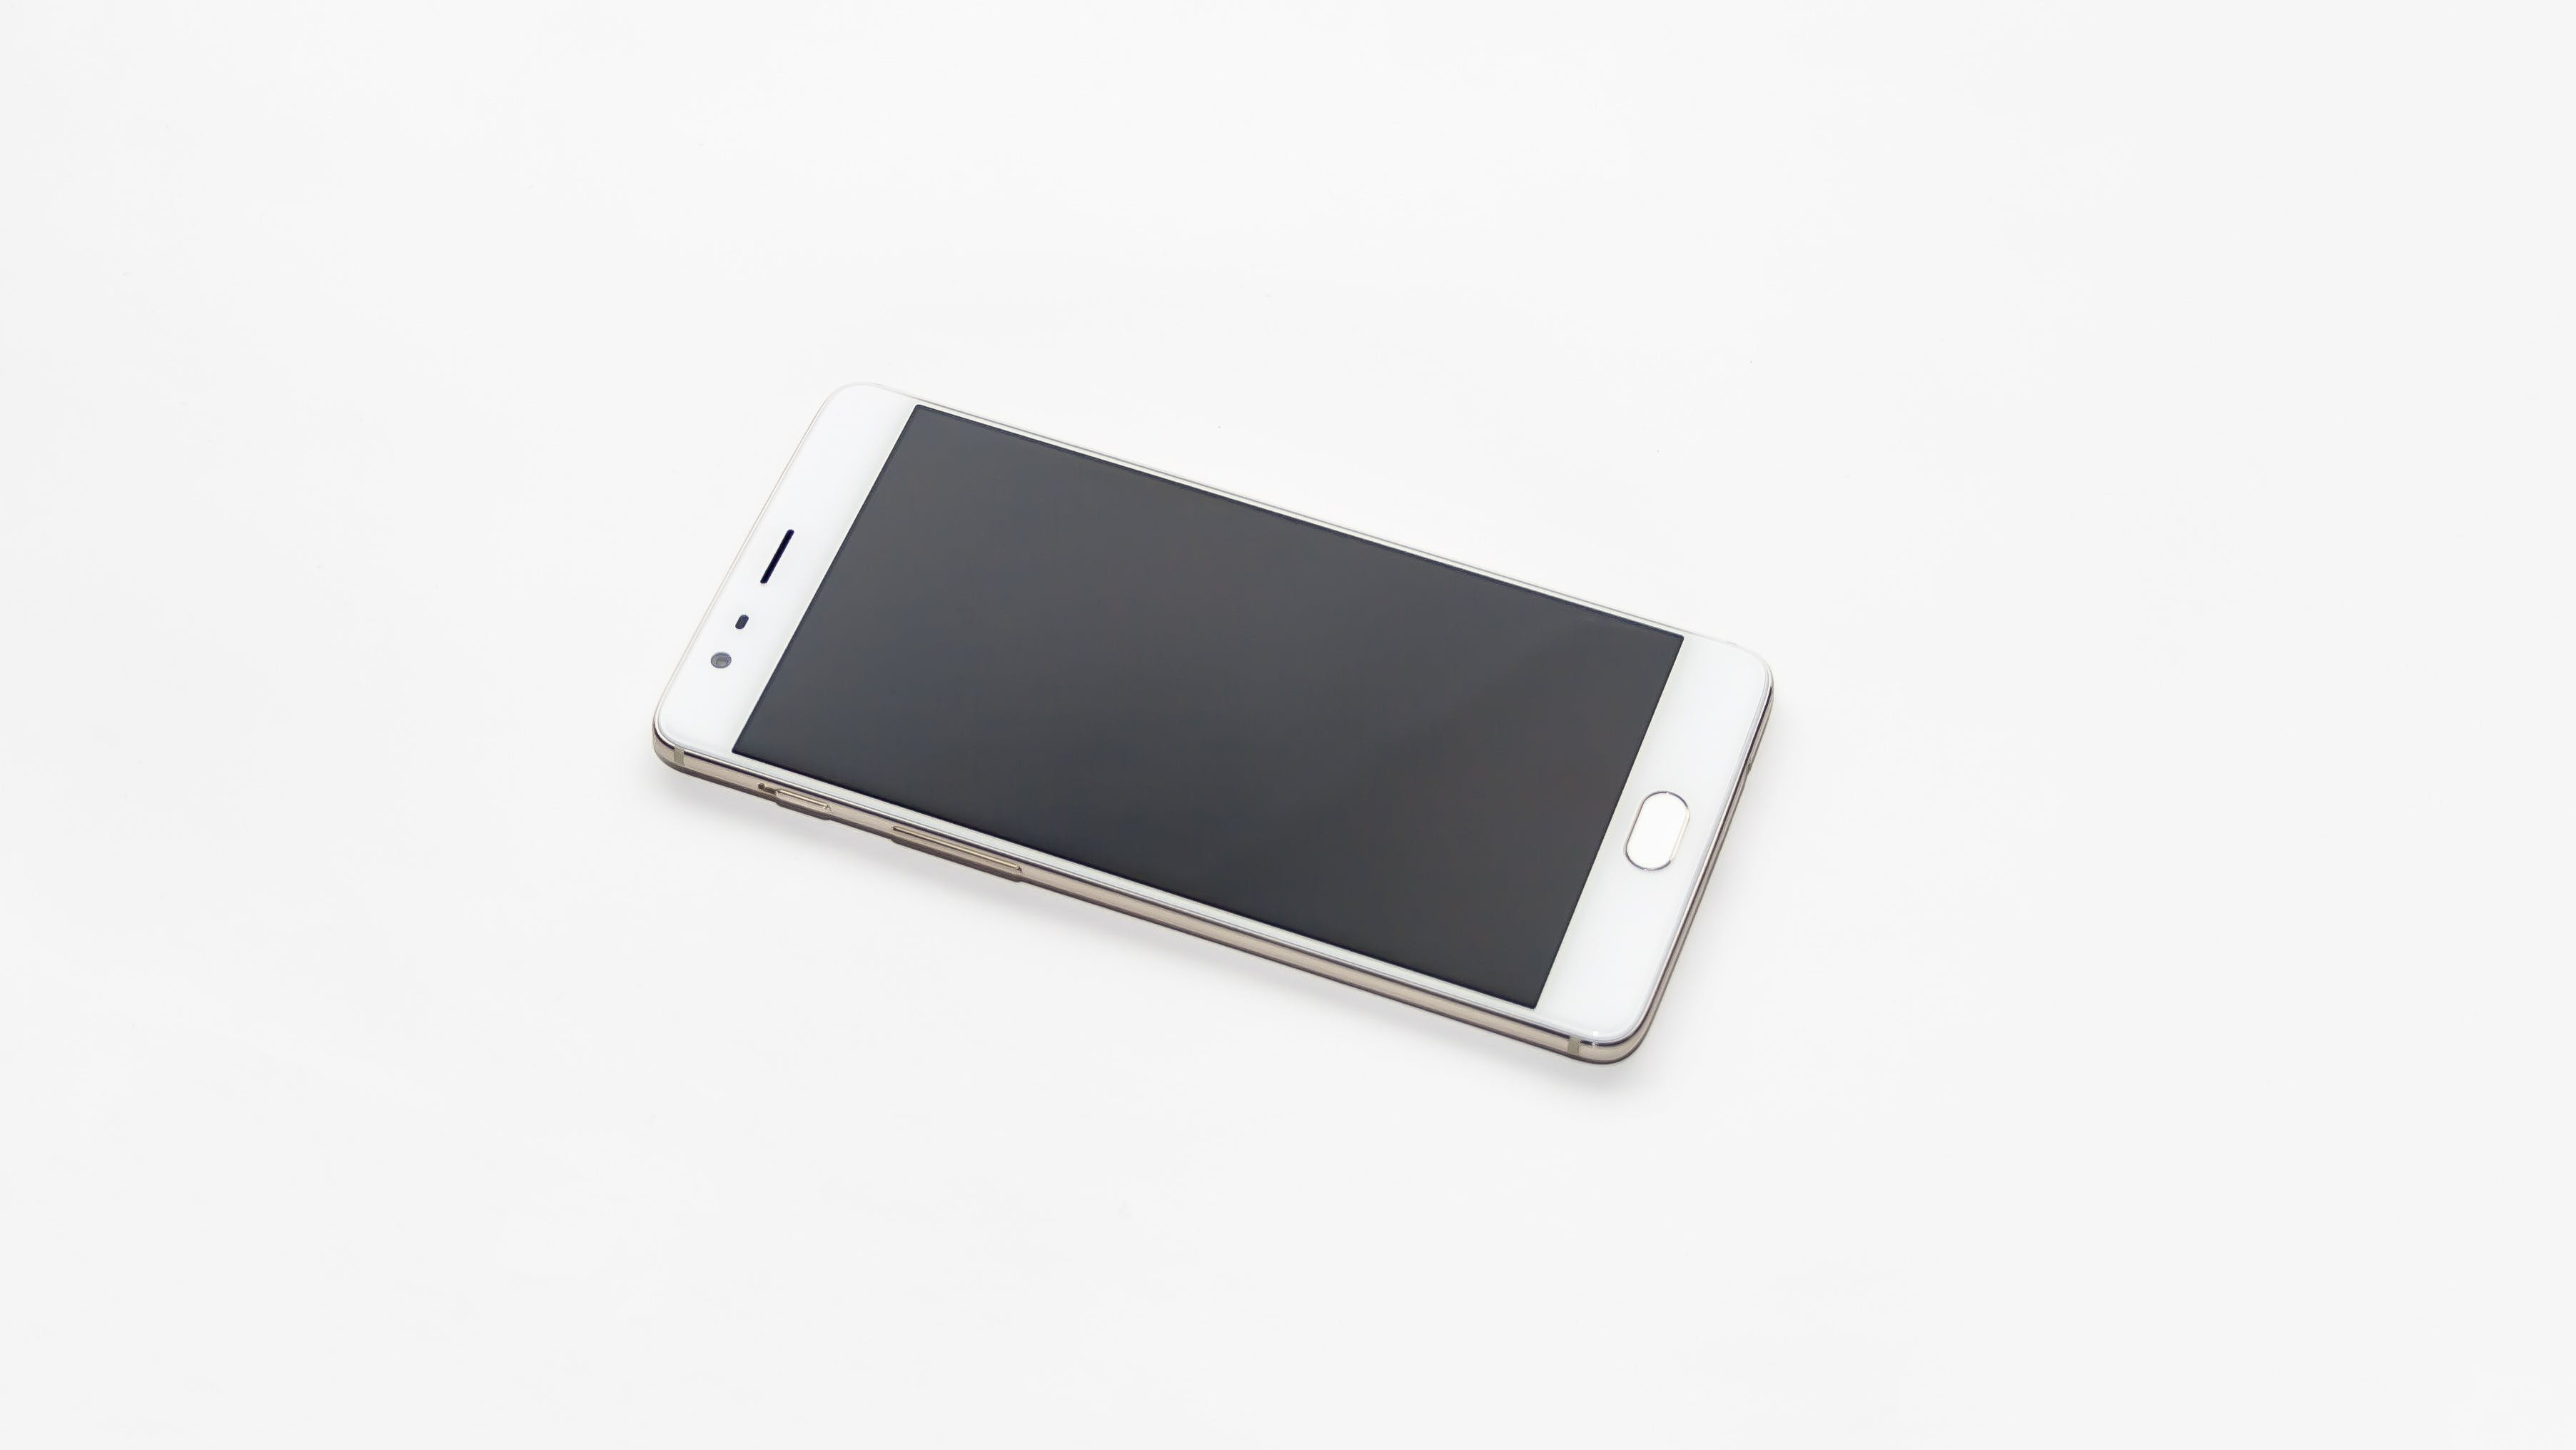 White Smartphone on Black Screen